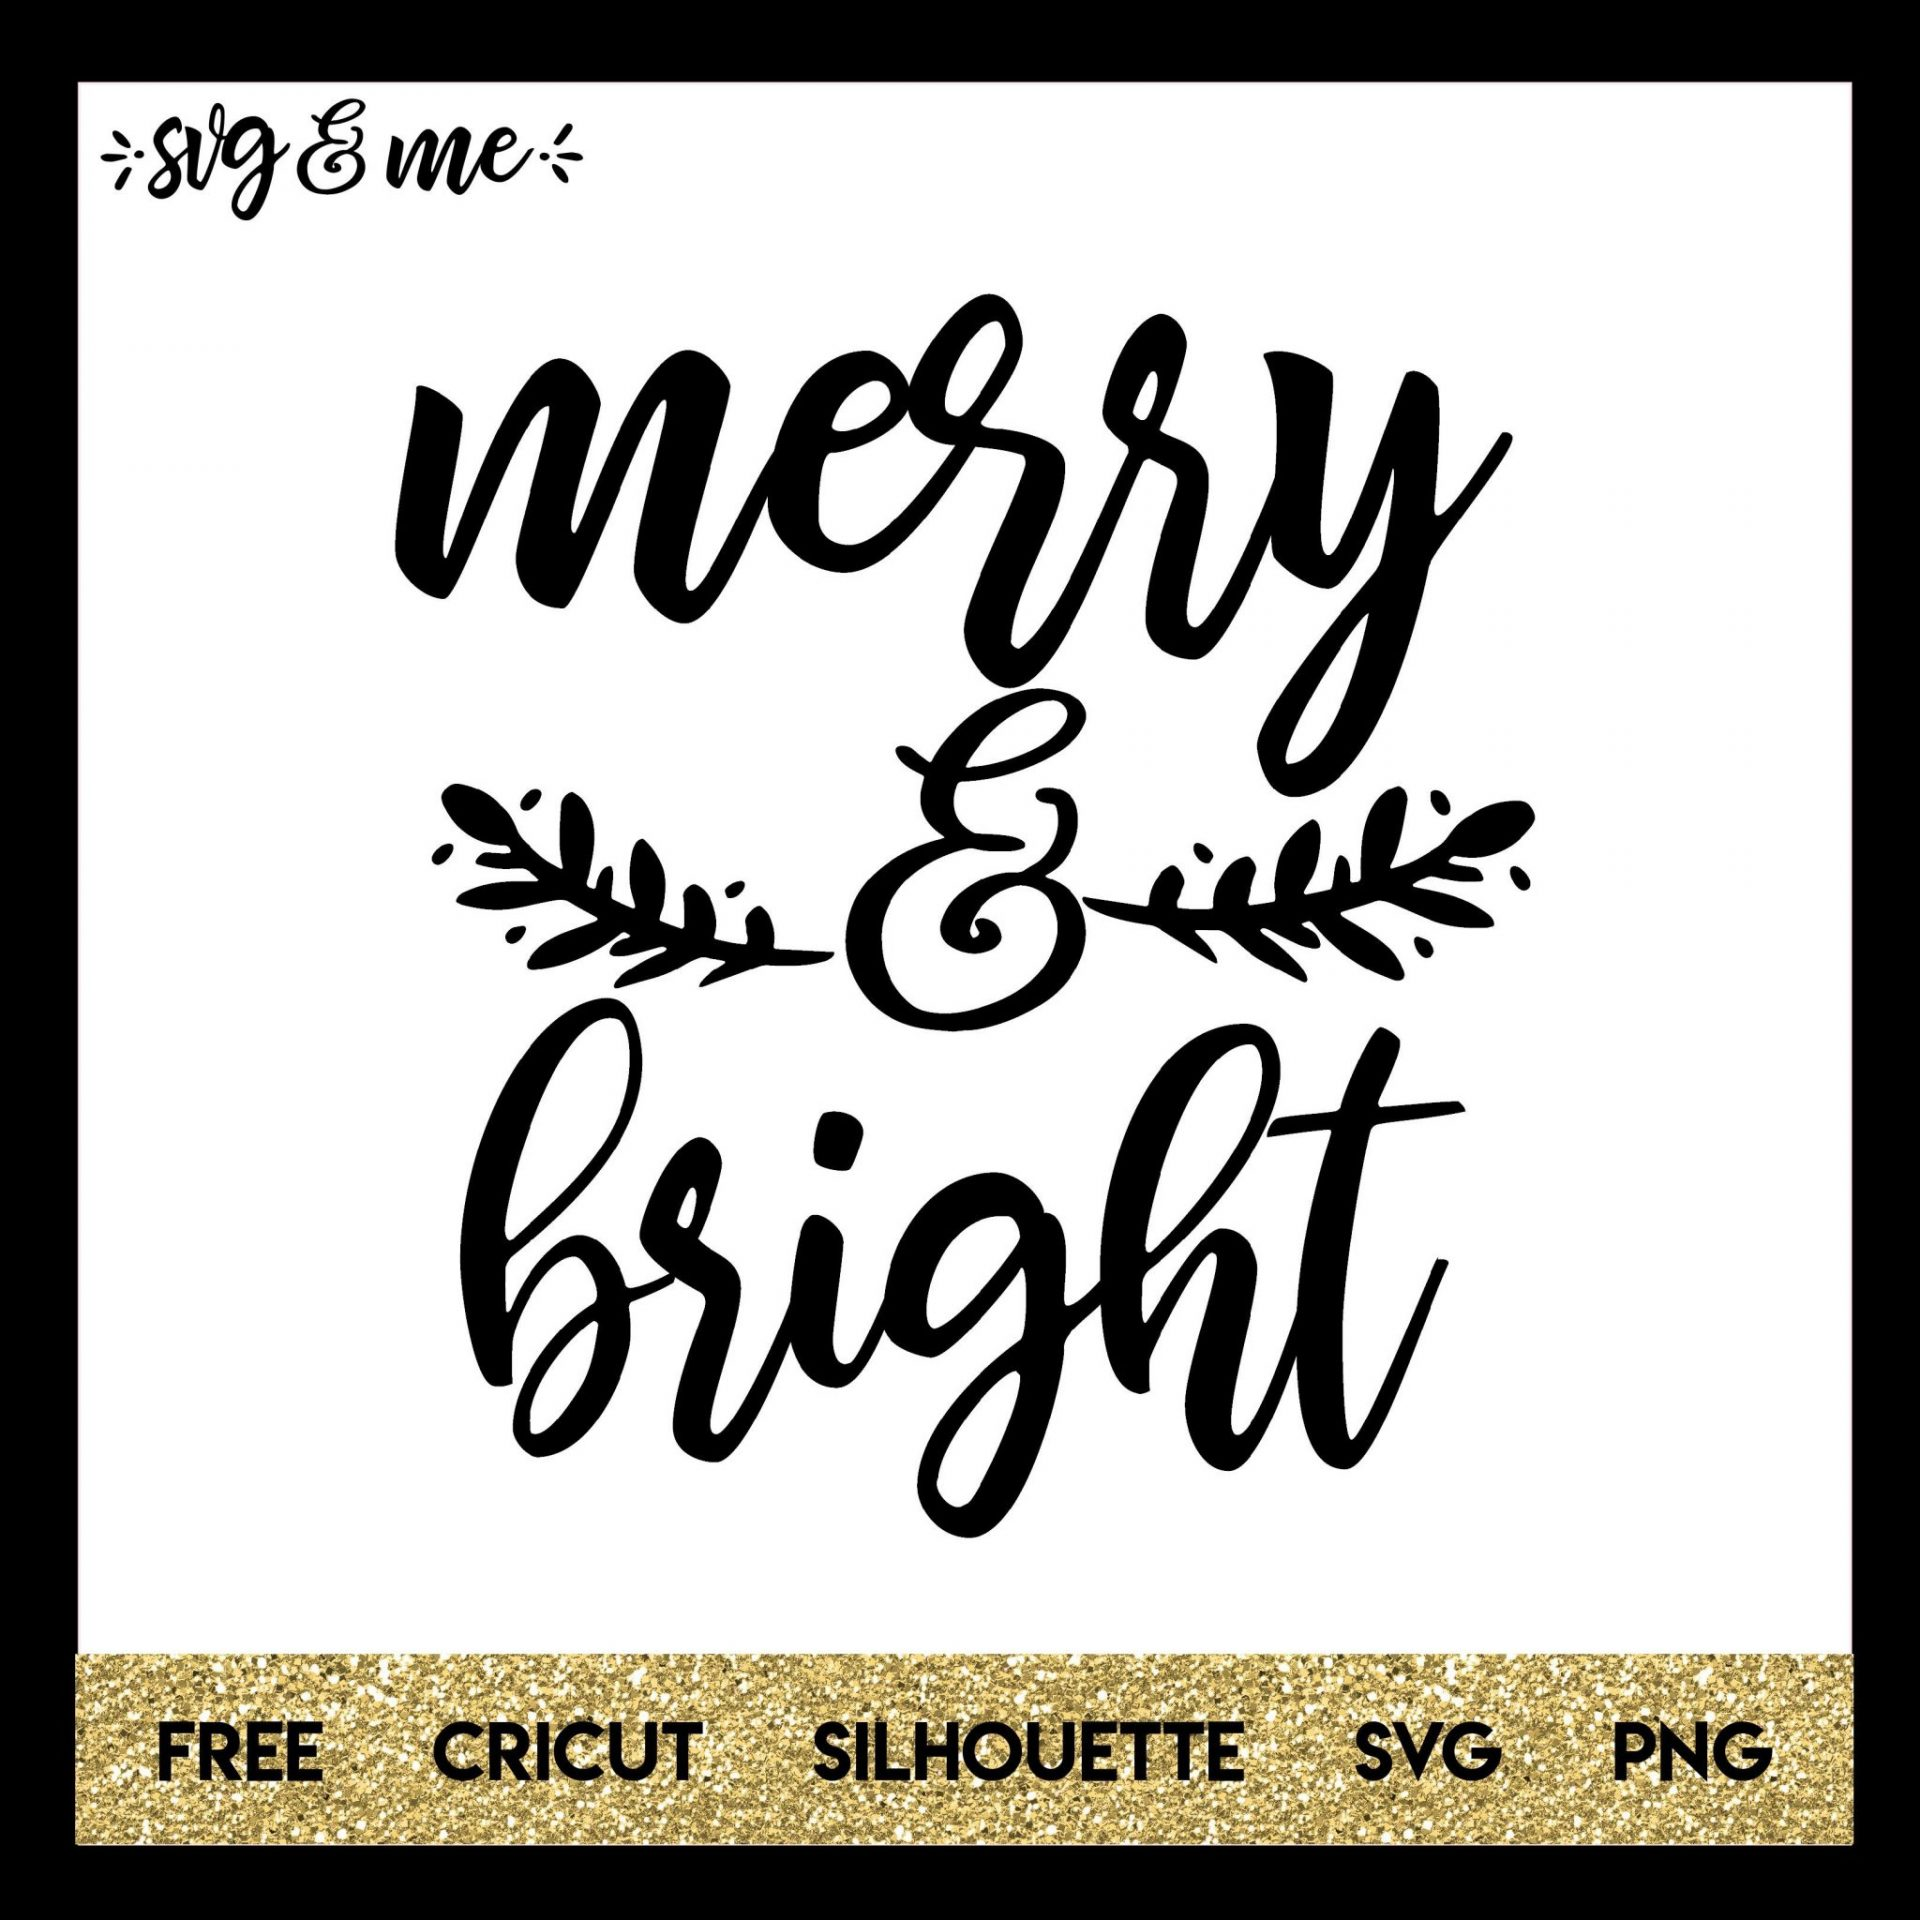 Cute Bright Gift Set Bright Svg Me Merry Holiday Merry Bright Holiday Merry Bright Pediatrics Merry inspiration Merry And Bright